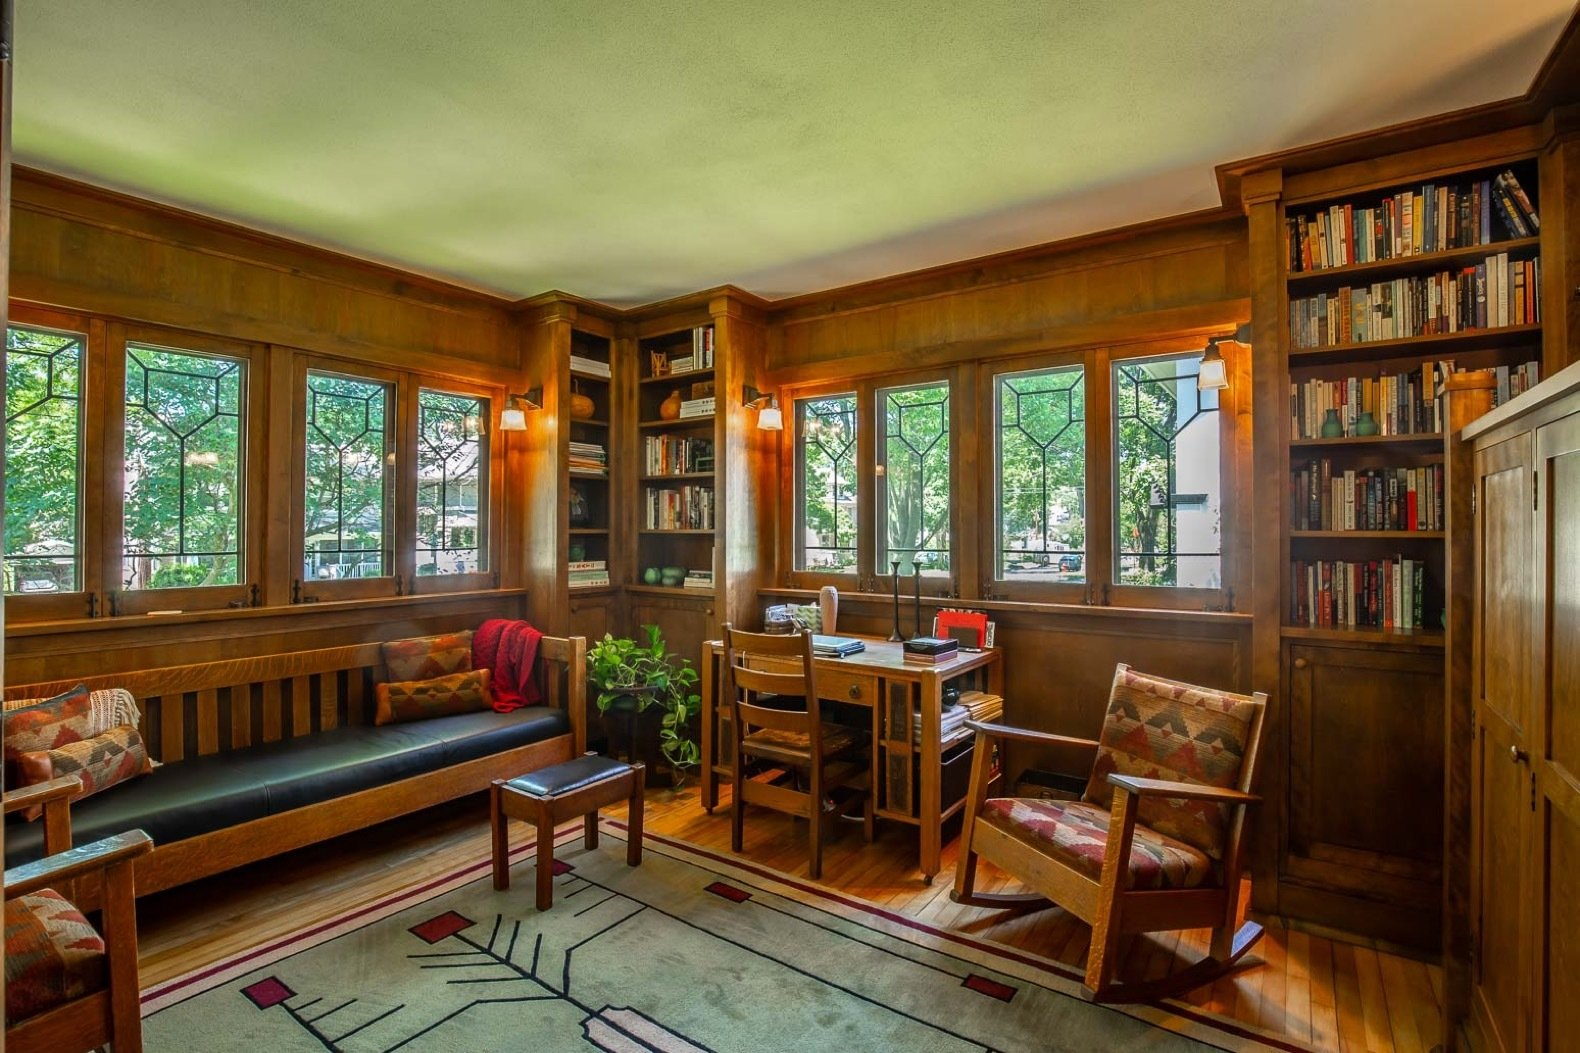 Snatch Up This Rare Frank Lloyd Wright Designed Asb Home